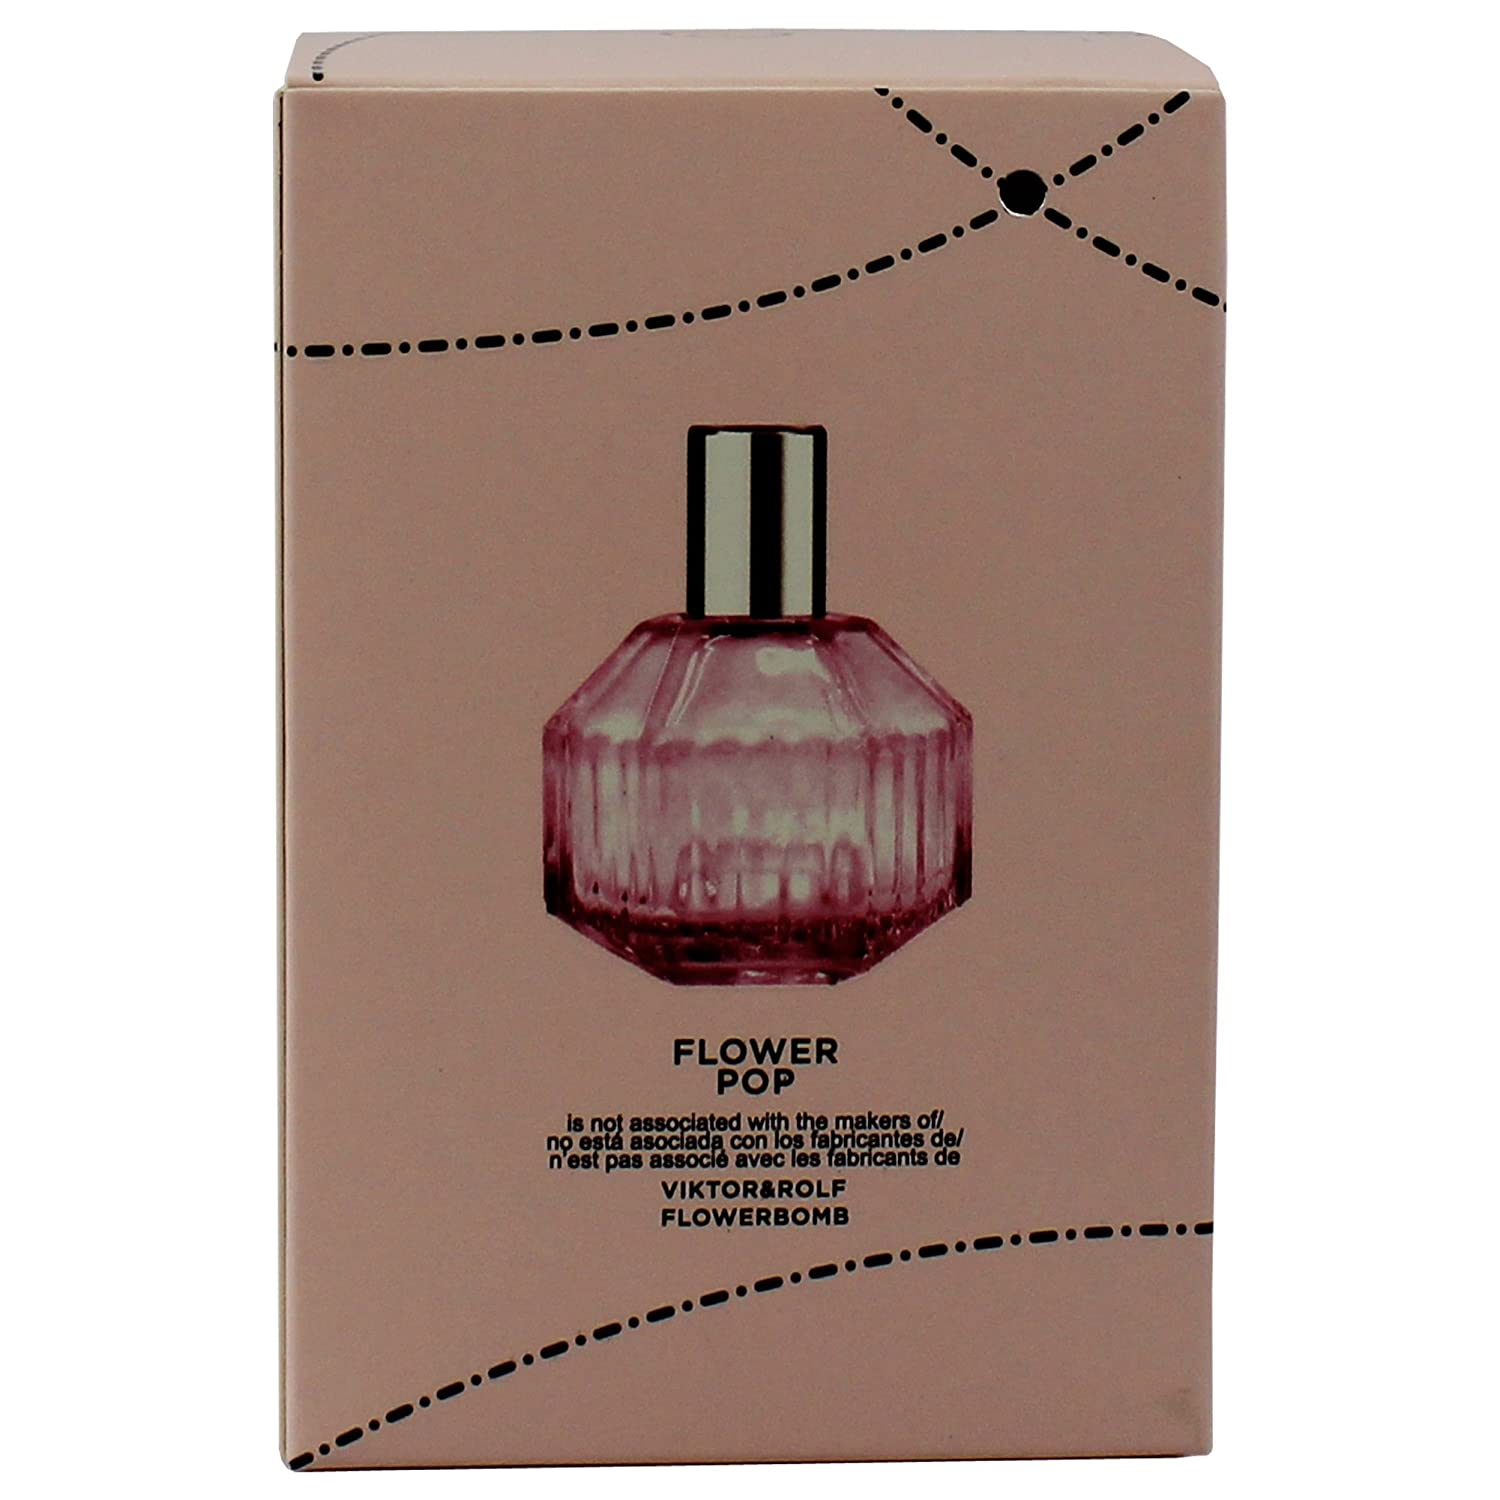 Amazon.com : Flower Pop Womens Perfume - 3.3 Fl Oz/100 Ml, Inspired by Flower Bomb by Victor&Rolf : Beauty